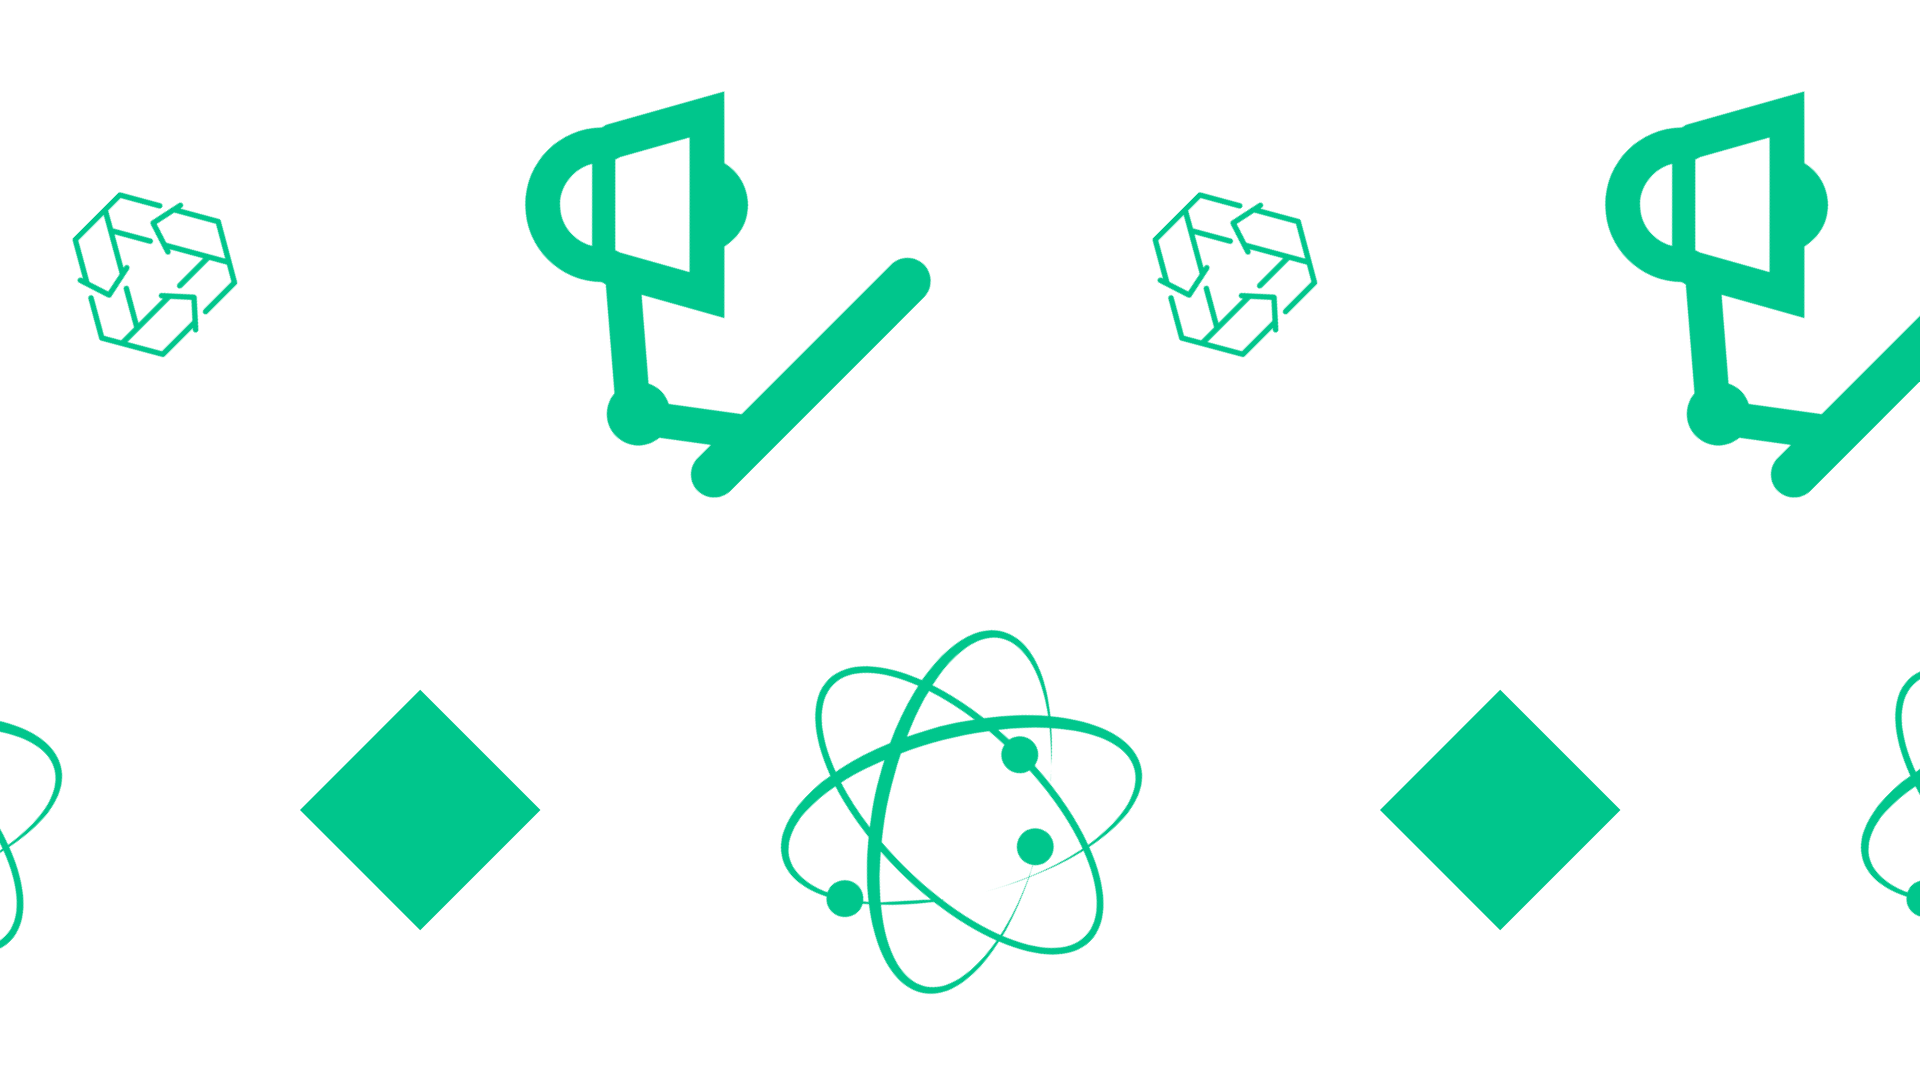 Green,                Text,                Technology,                Font,                Product,                Line,                Diagram,                Logo,                Area,                Desk,                Nuclear,                Lights,                Ecologic,                 Free Image